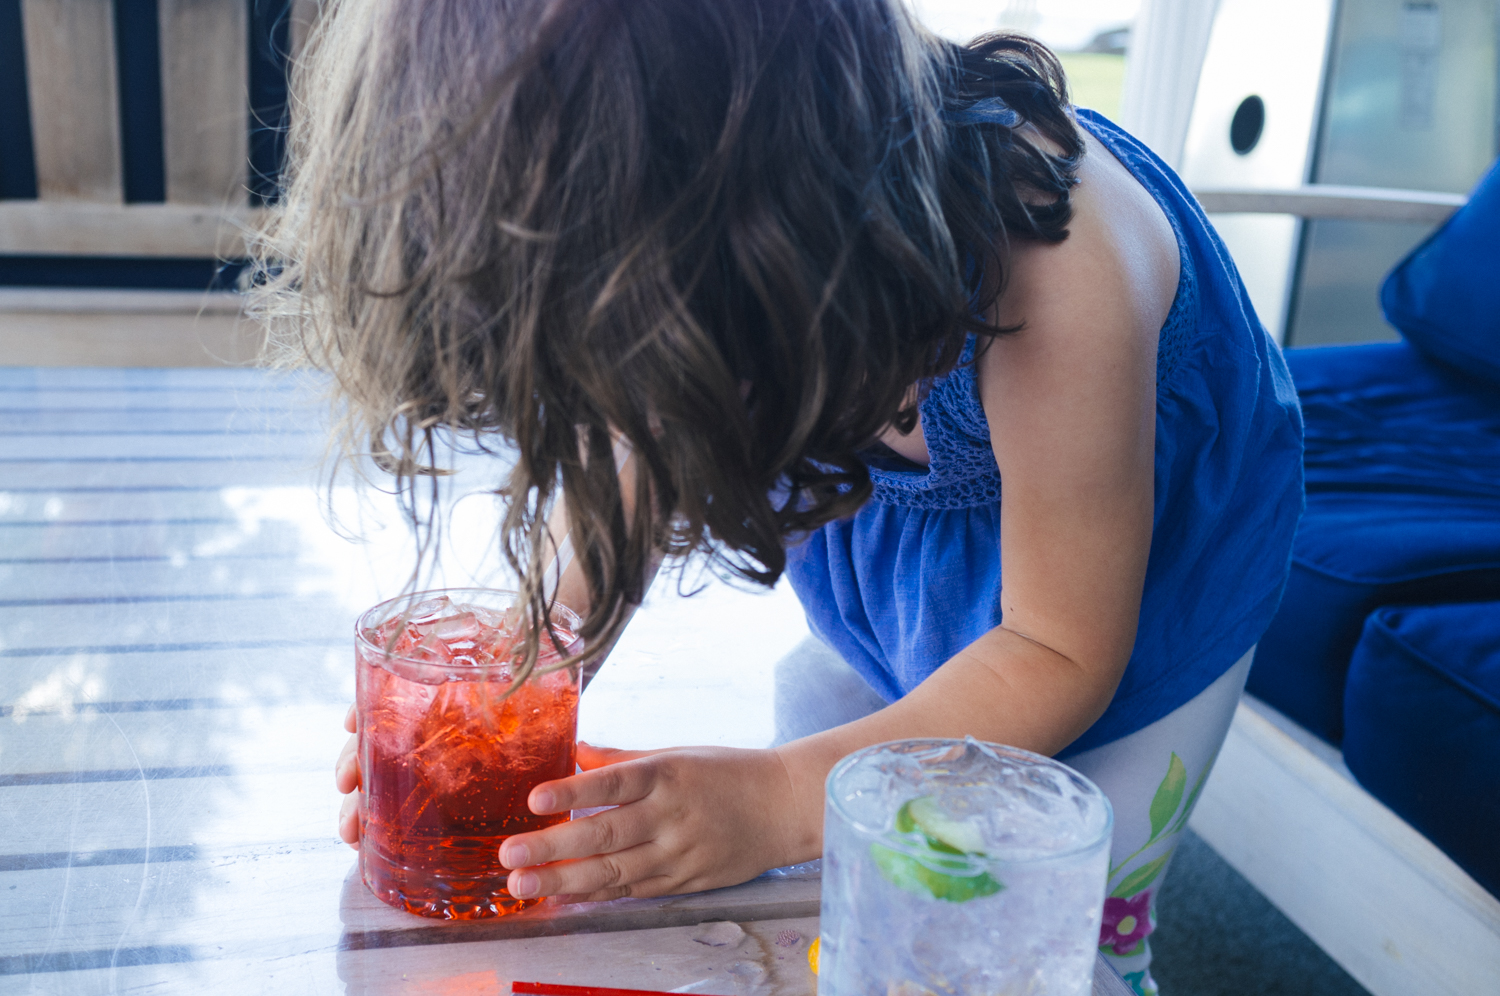 We gave Chelsea a Shirley Temple. Surprisingly she's not that into them. This was her first and only sip.